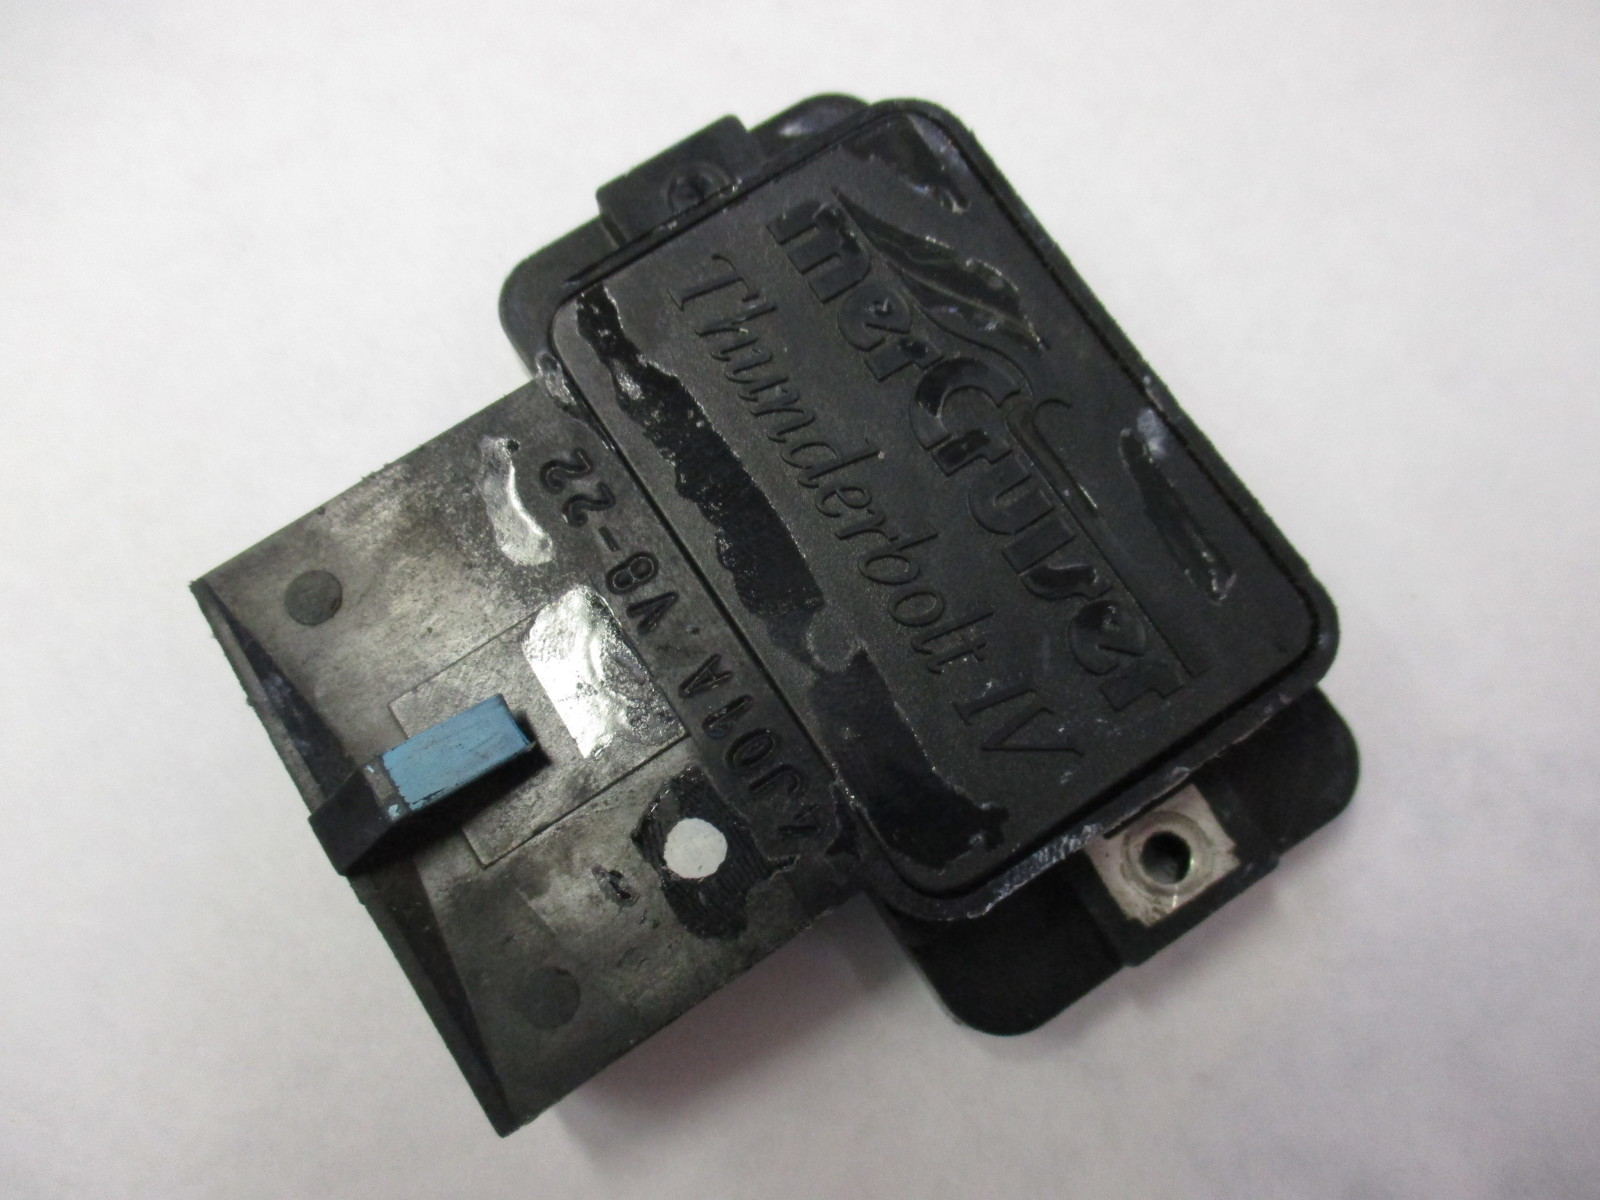 Mercruiser Thunderbolt Iv Ignition Module Wiring Diagram on mercruiser shift interrupter switch wiring, ignition coil wiring diagram, 165 mercruiser shift interrupt switch wiring diagram, starcraft boat wiring diagram, mercruiser coil wiring diagram,